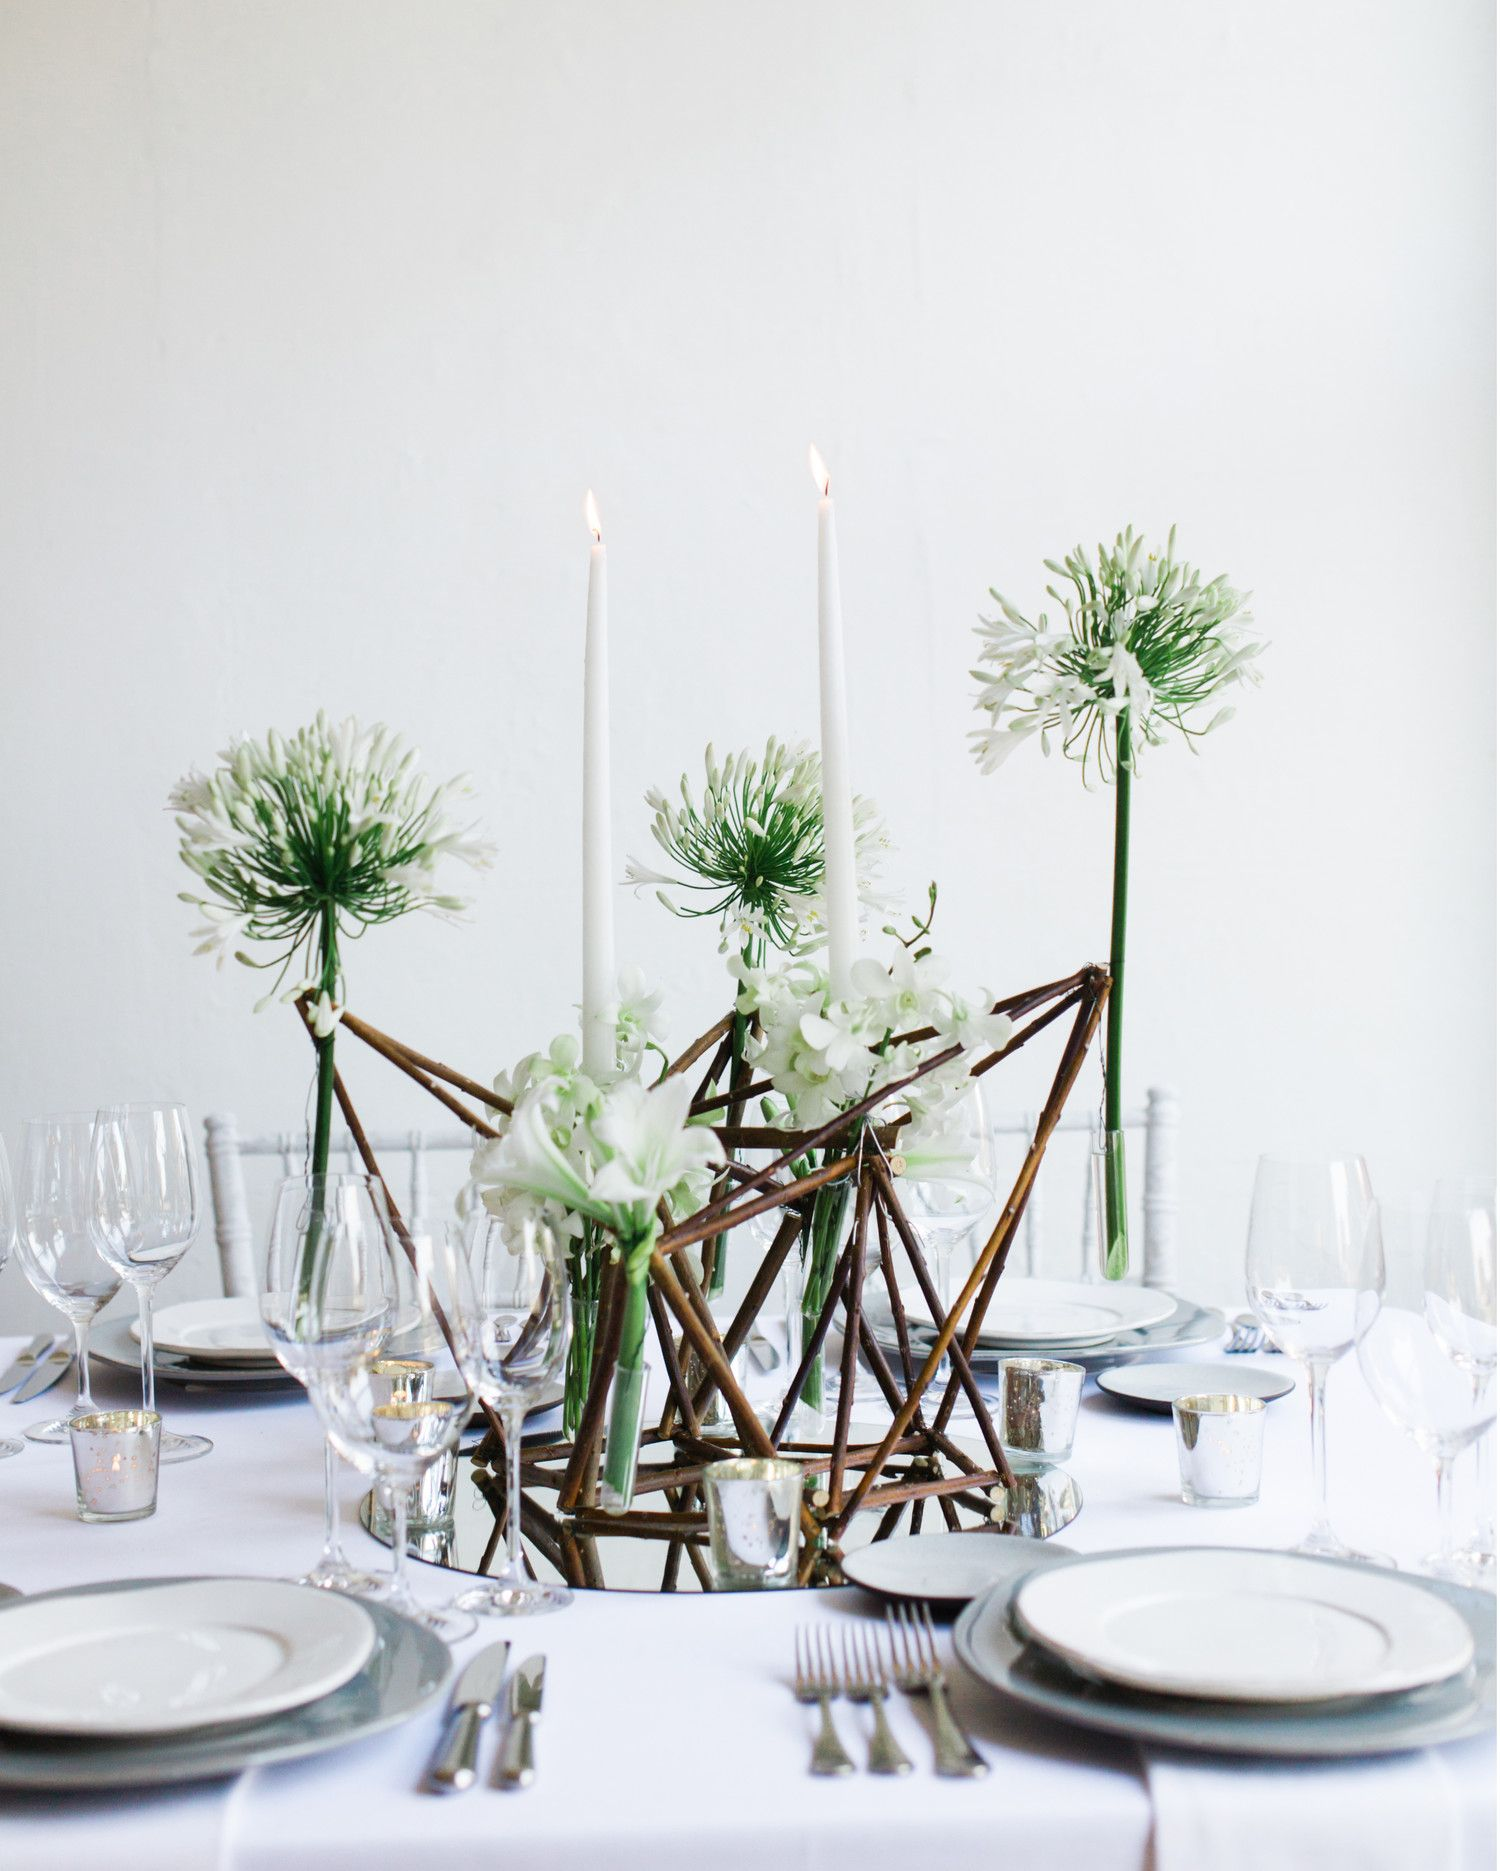 39 Simple Wedding Centerpieces | Wedding centerpieces, Centerpieces ...